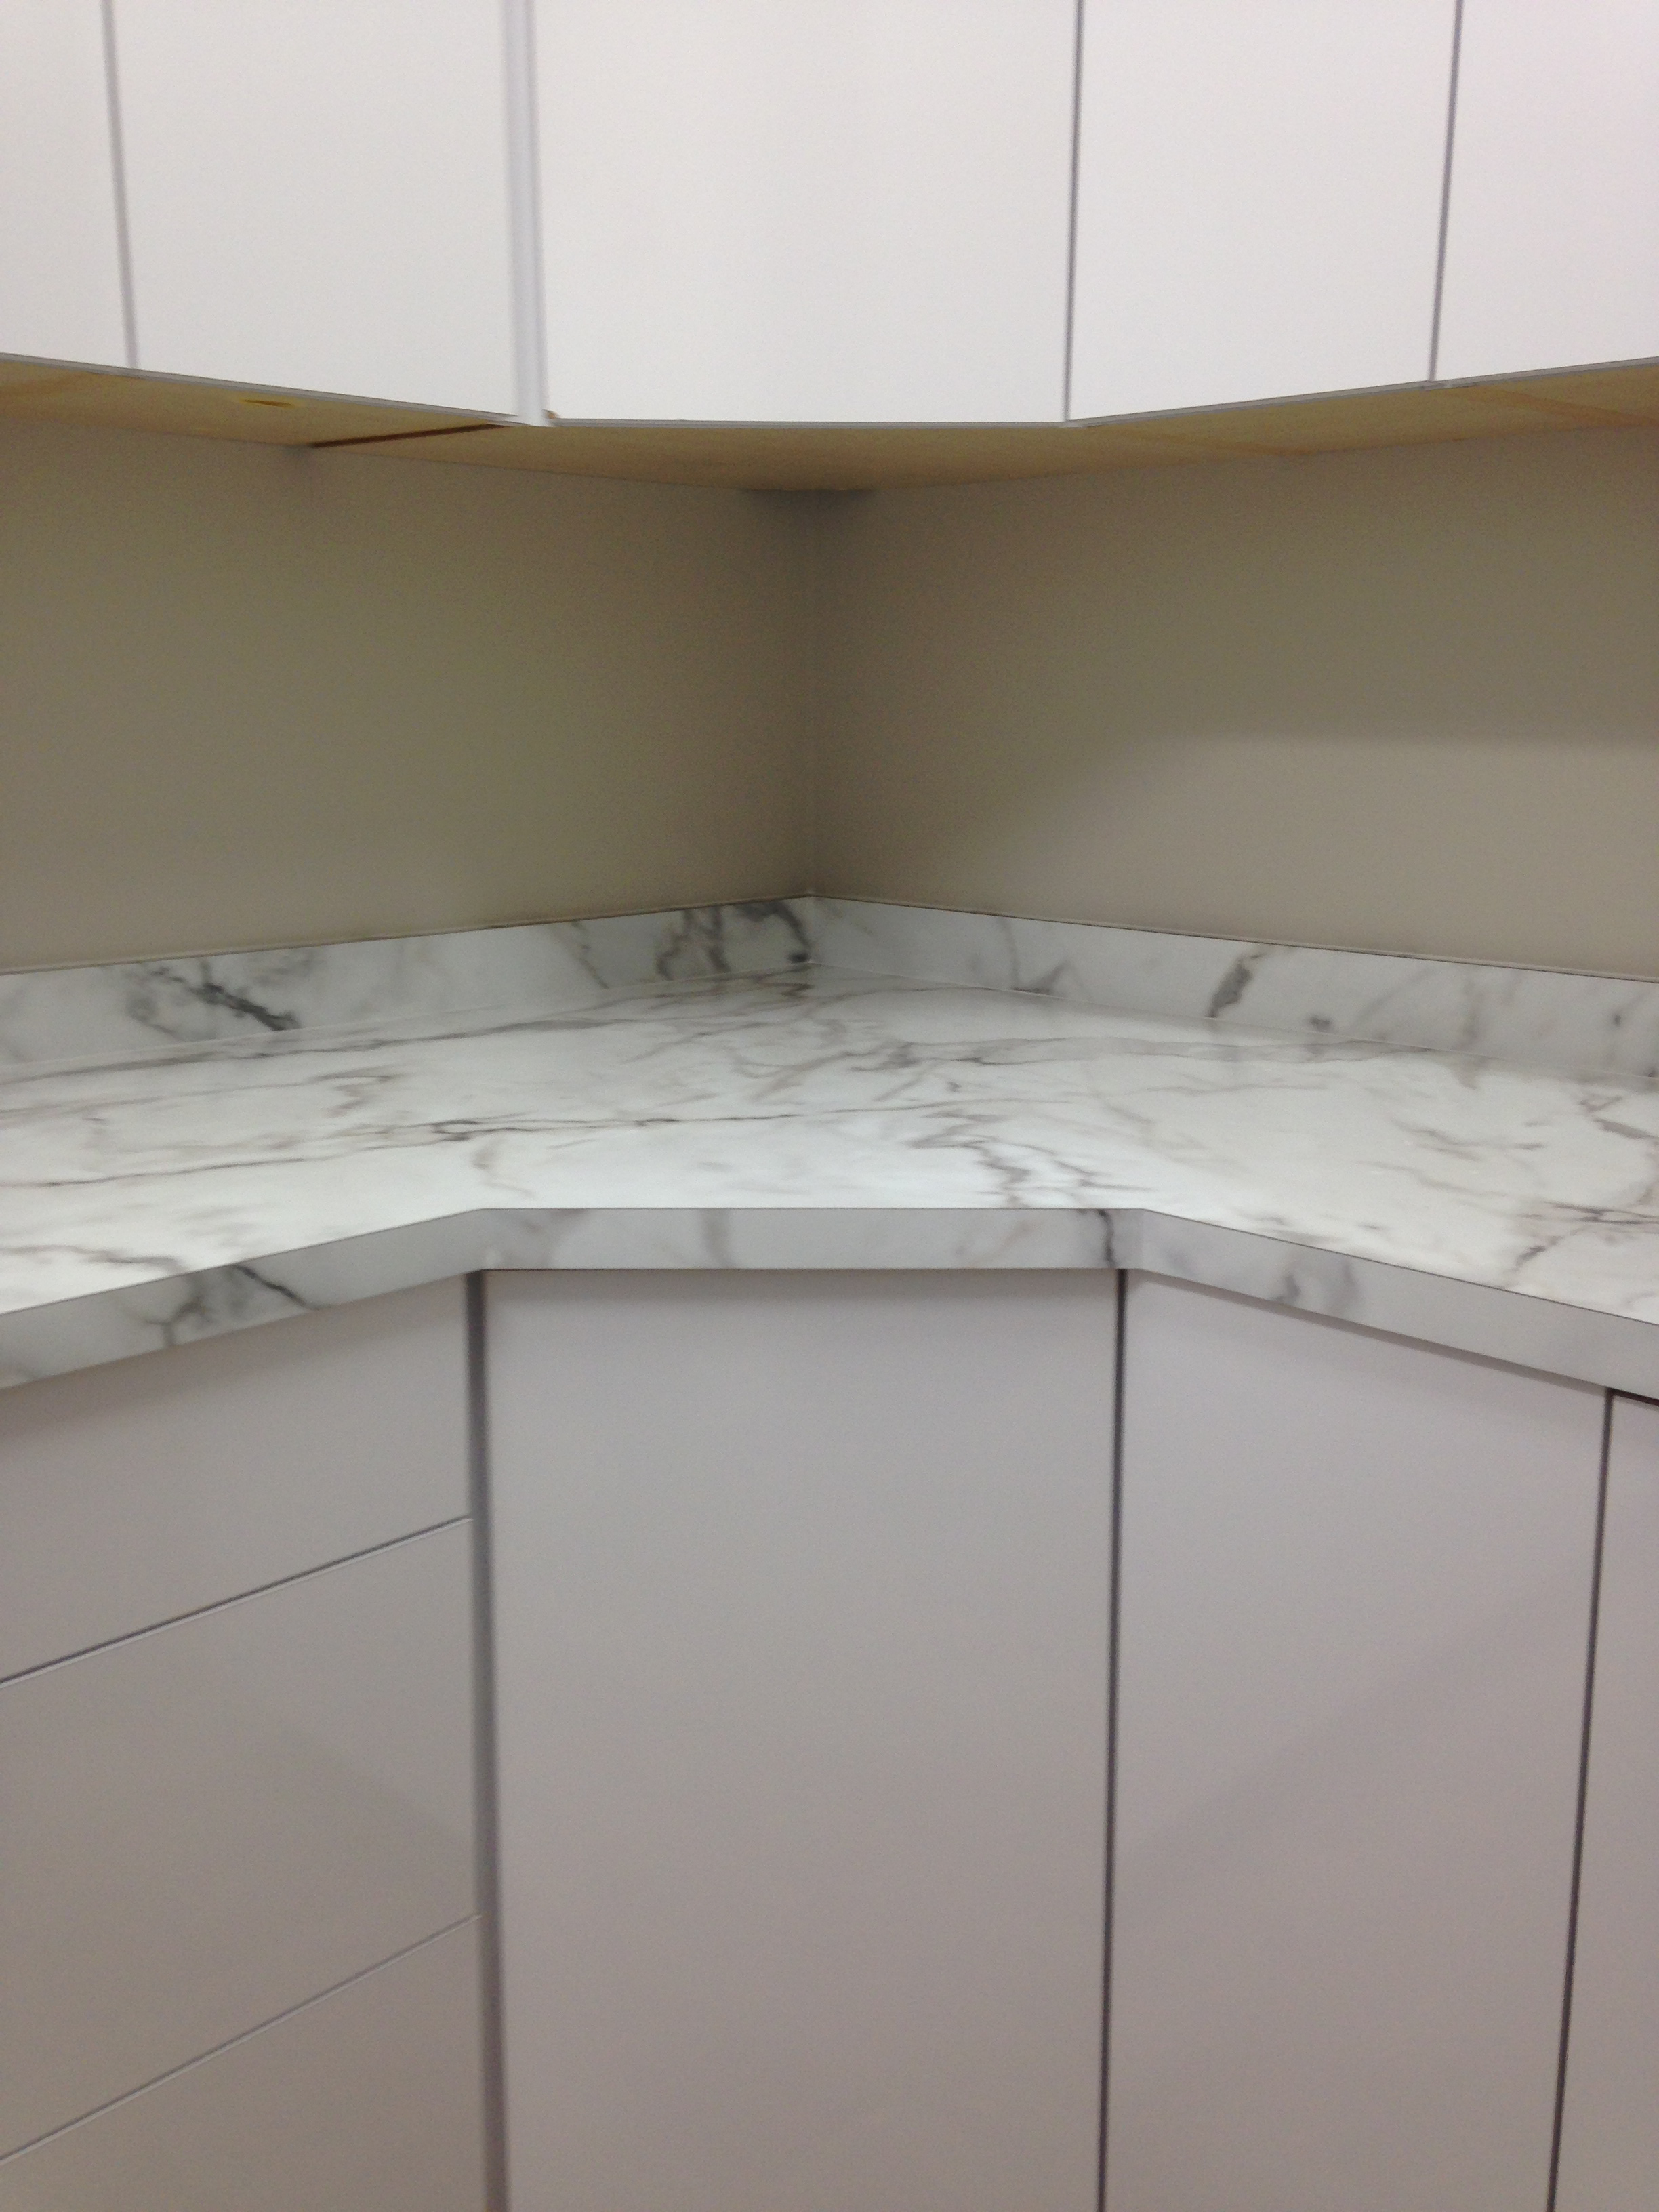 Classic Countertops 3155 Southeast Miehe Drive Grimes, IA Counter Tops    MapQuest